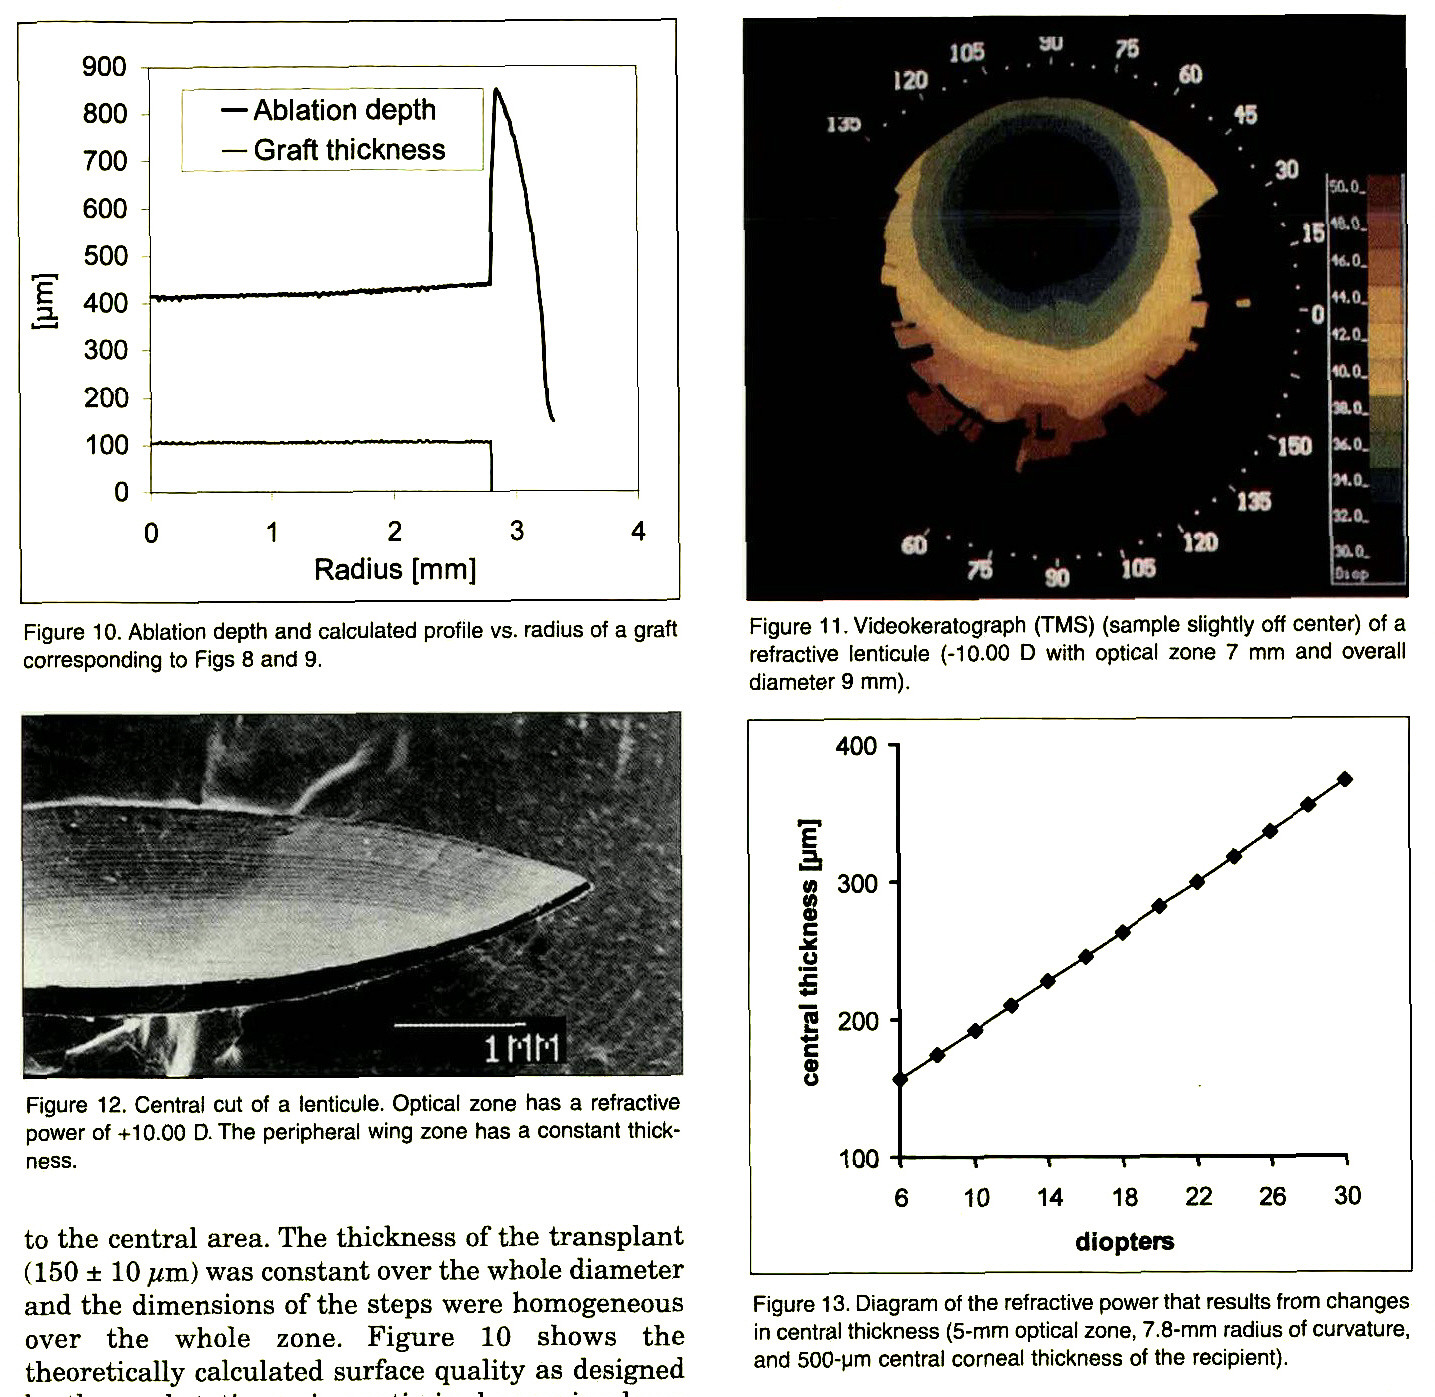 Figure 10. Ablation depth and calculated profile vs. radius of a graft corresponding to Figs 8 and 9.Figure 1 1 . Videokeratograph (TMS) (sample slightly off center) of a refractive lenticule (-10.00 D with optical zone 7 mm and overall diameter 9 mm).Figure 12. Central cut of a lenticule. Optical zone has a refractive power of +10.00 D. The peripheral wing zone has a constant thickness.Figure 13. Diagram of the refractive power that results from changes in central thickness (5-mm optical zone, 7.8-mm radius of curvature, and 500-Mm central corneal thickness of the recipient).